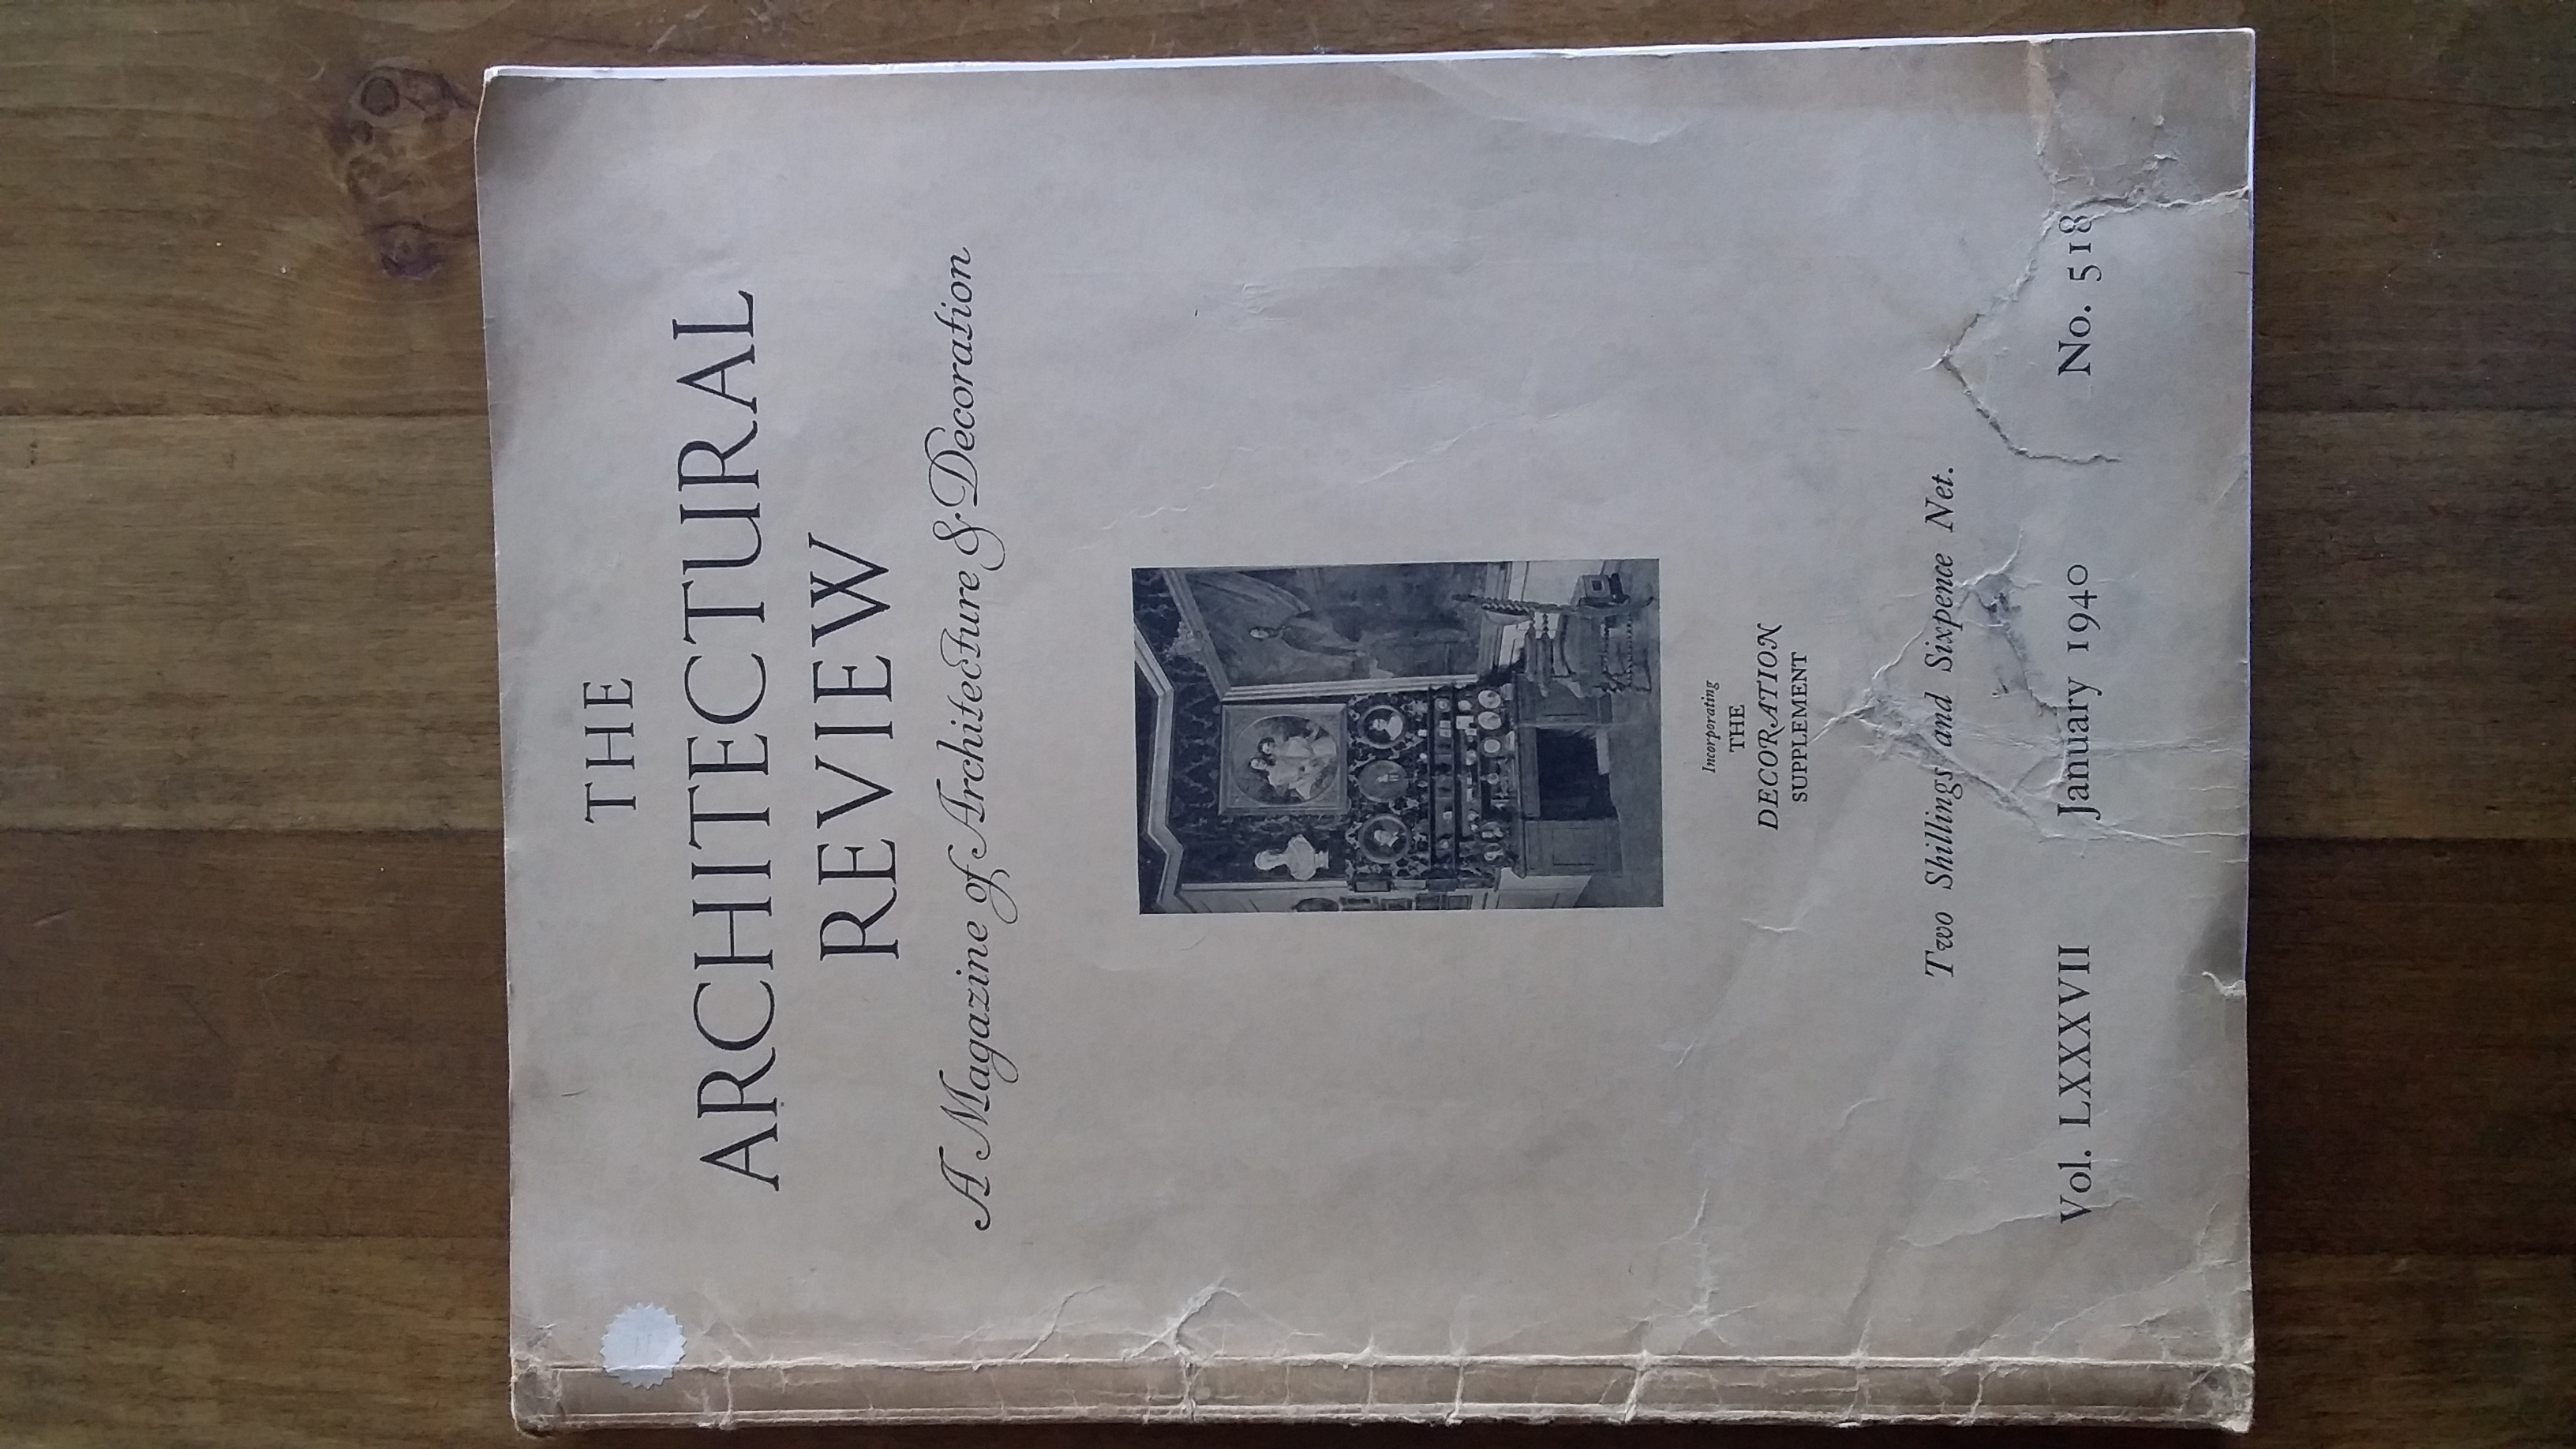 Image for THE ARCHITECTURAL REVIEW. A Magazine of Architecture and Decoration. Incorporating The Decoration Supplement. Vol. 87, no. 518 (January 1940)